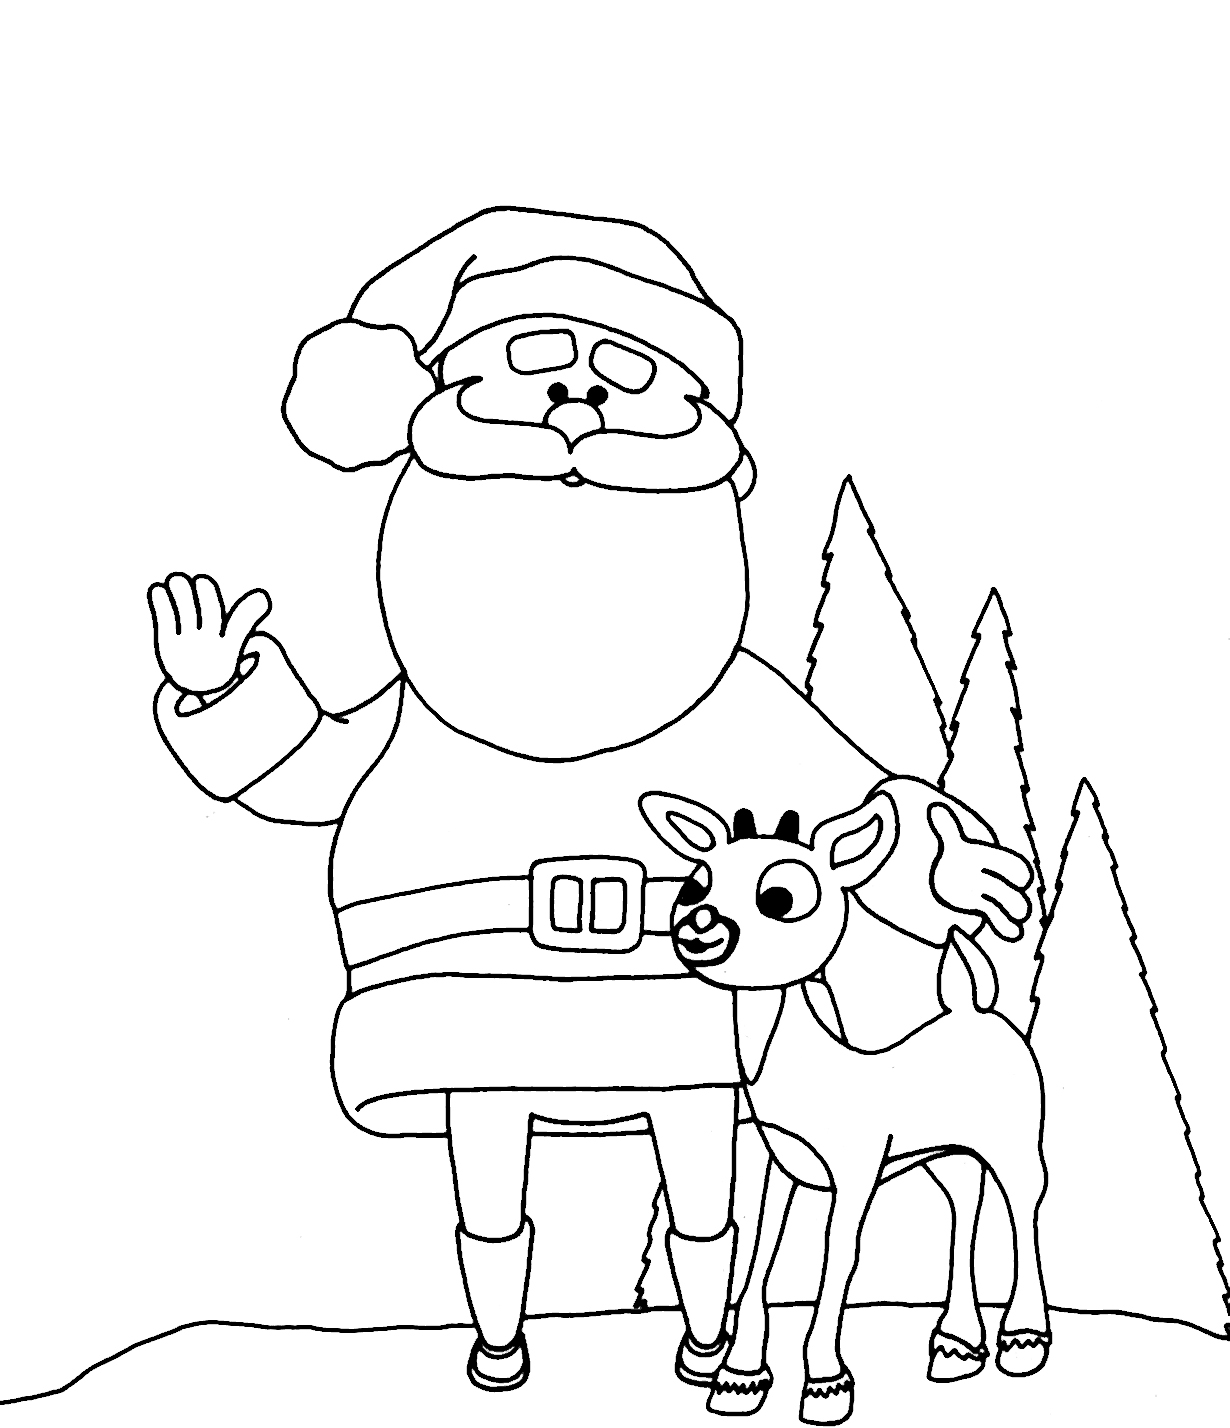 Reindeer Coloring Pages